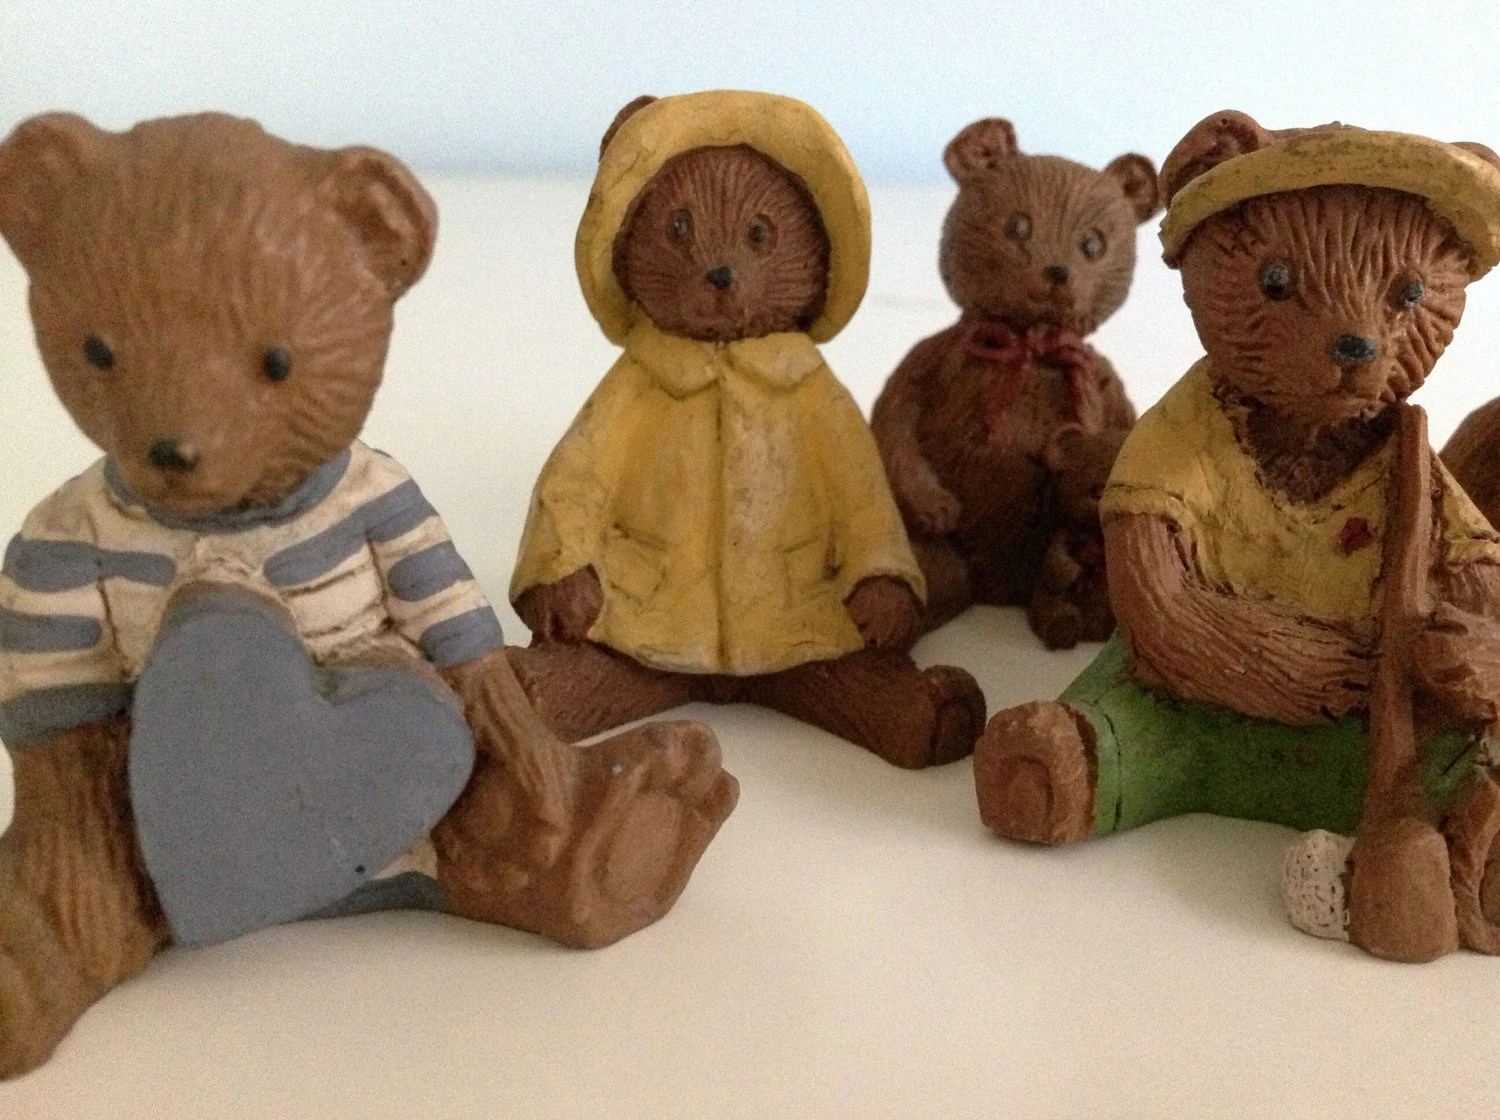 Vintage Teddy Bear Figurine Collection